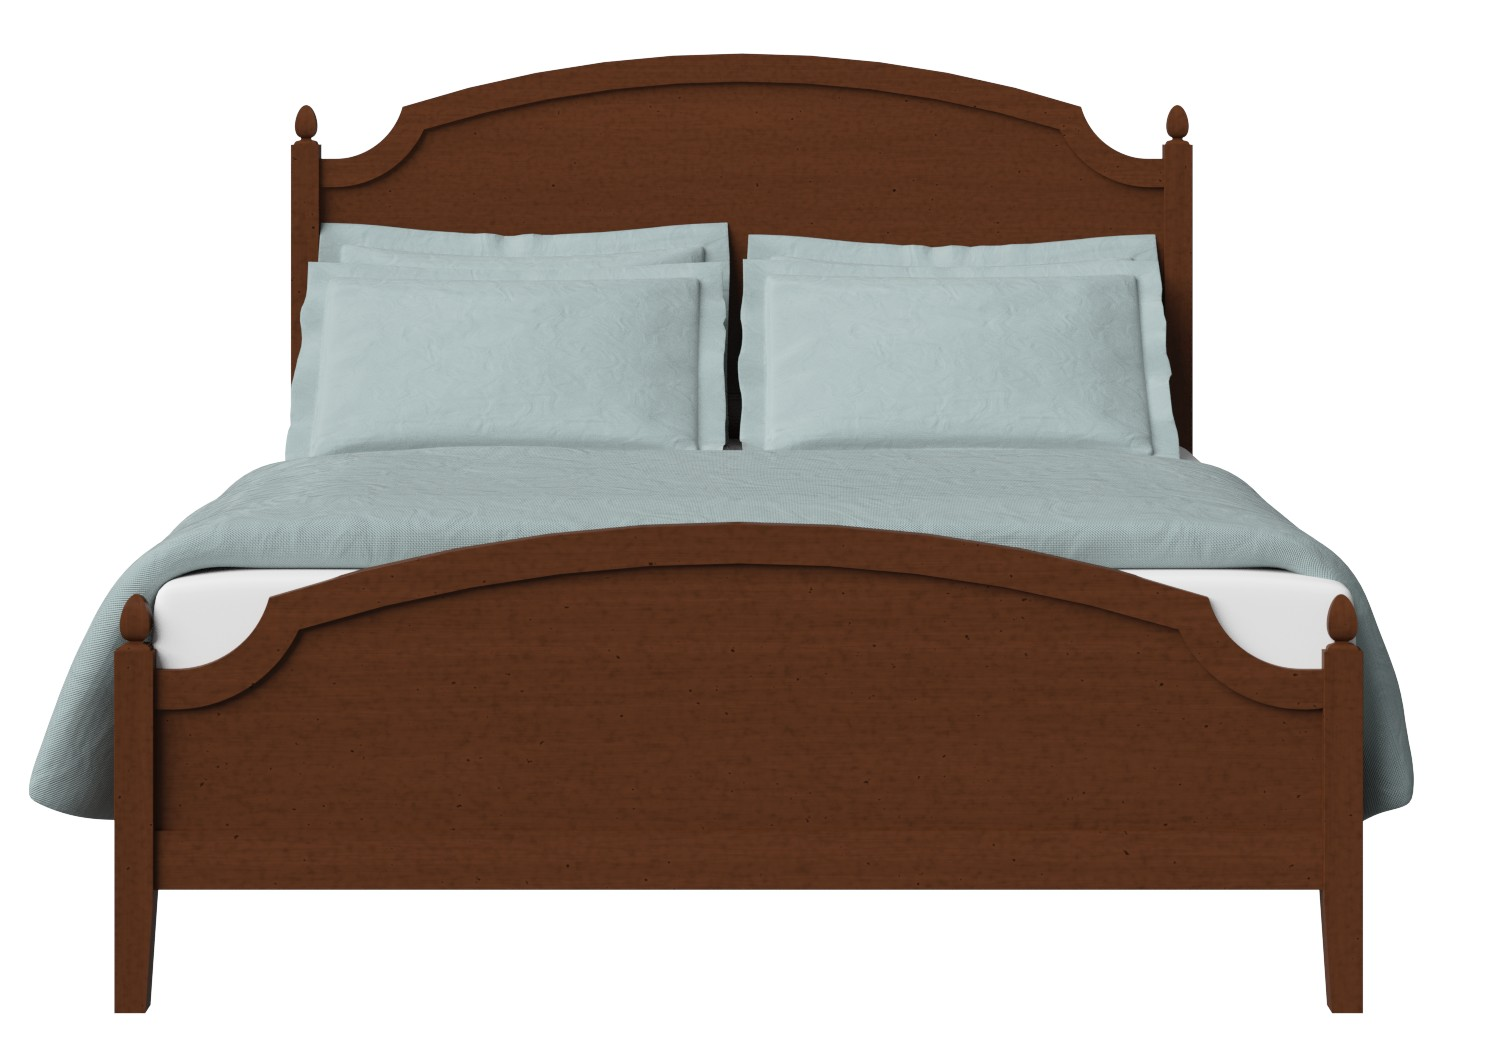 Kipling Low Footend Wood Bed in Dark Cherry